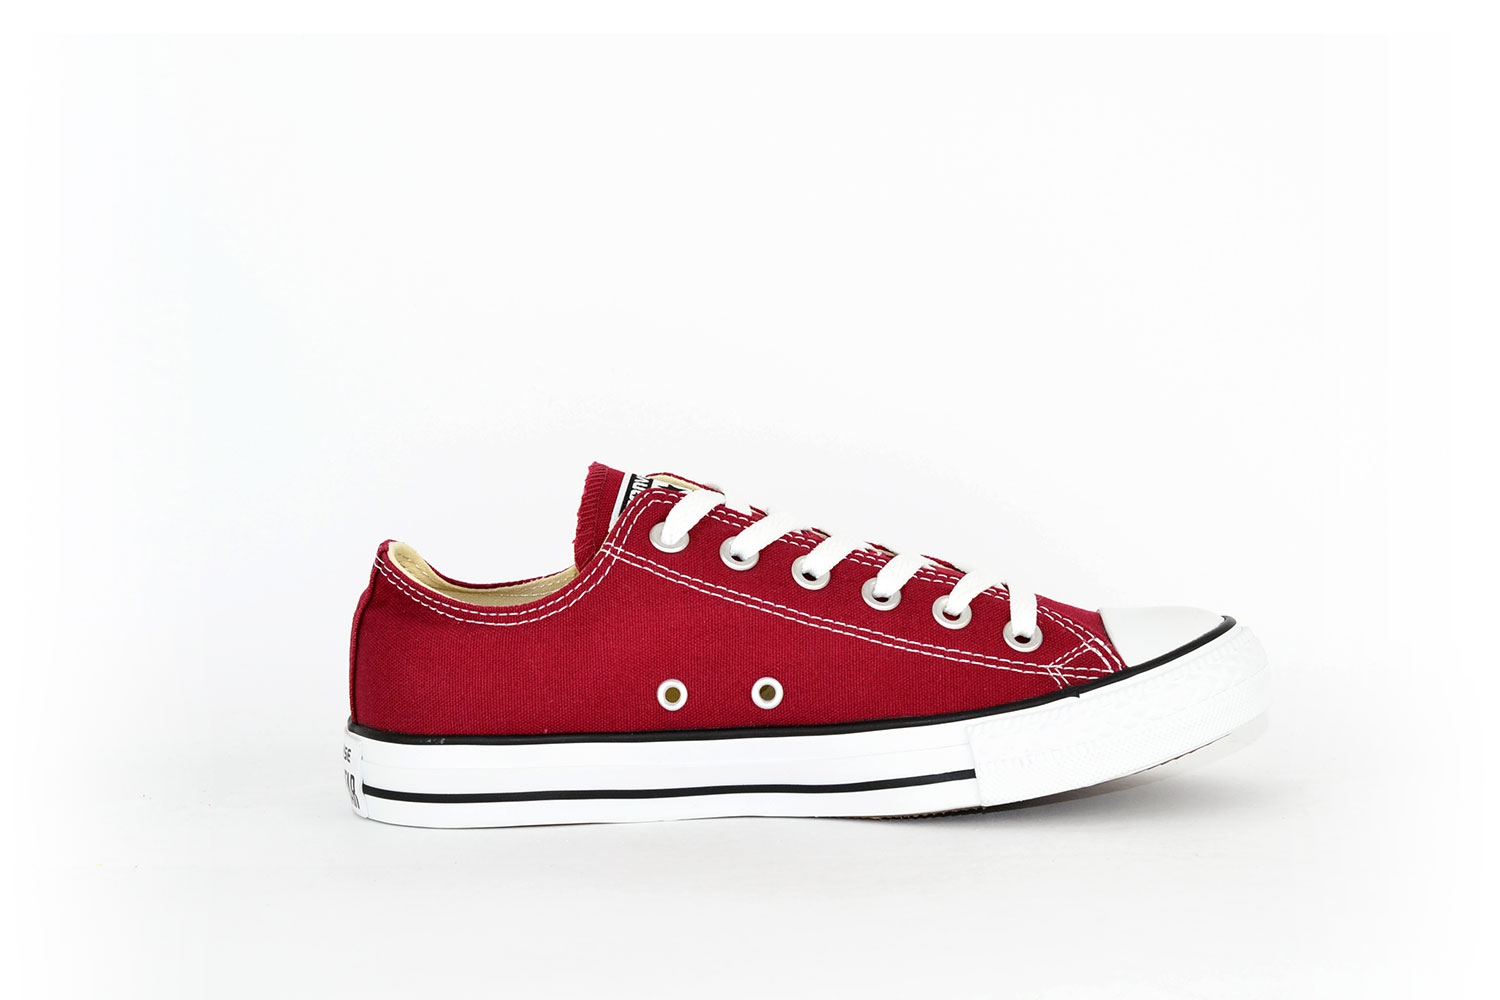 converse all star chucks flach maroon weinrot f low s. Black Bedroom Furniture Sets. Home Design Ideas